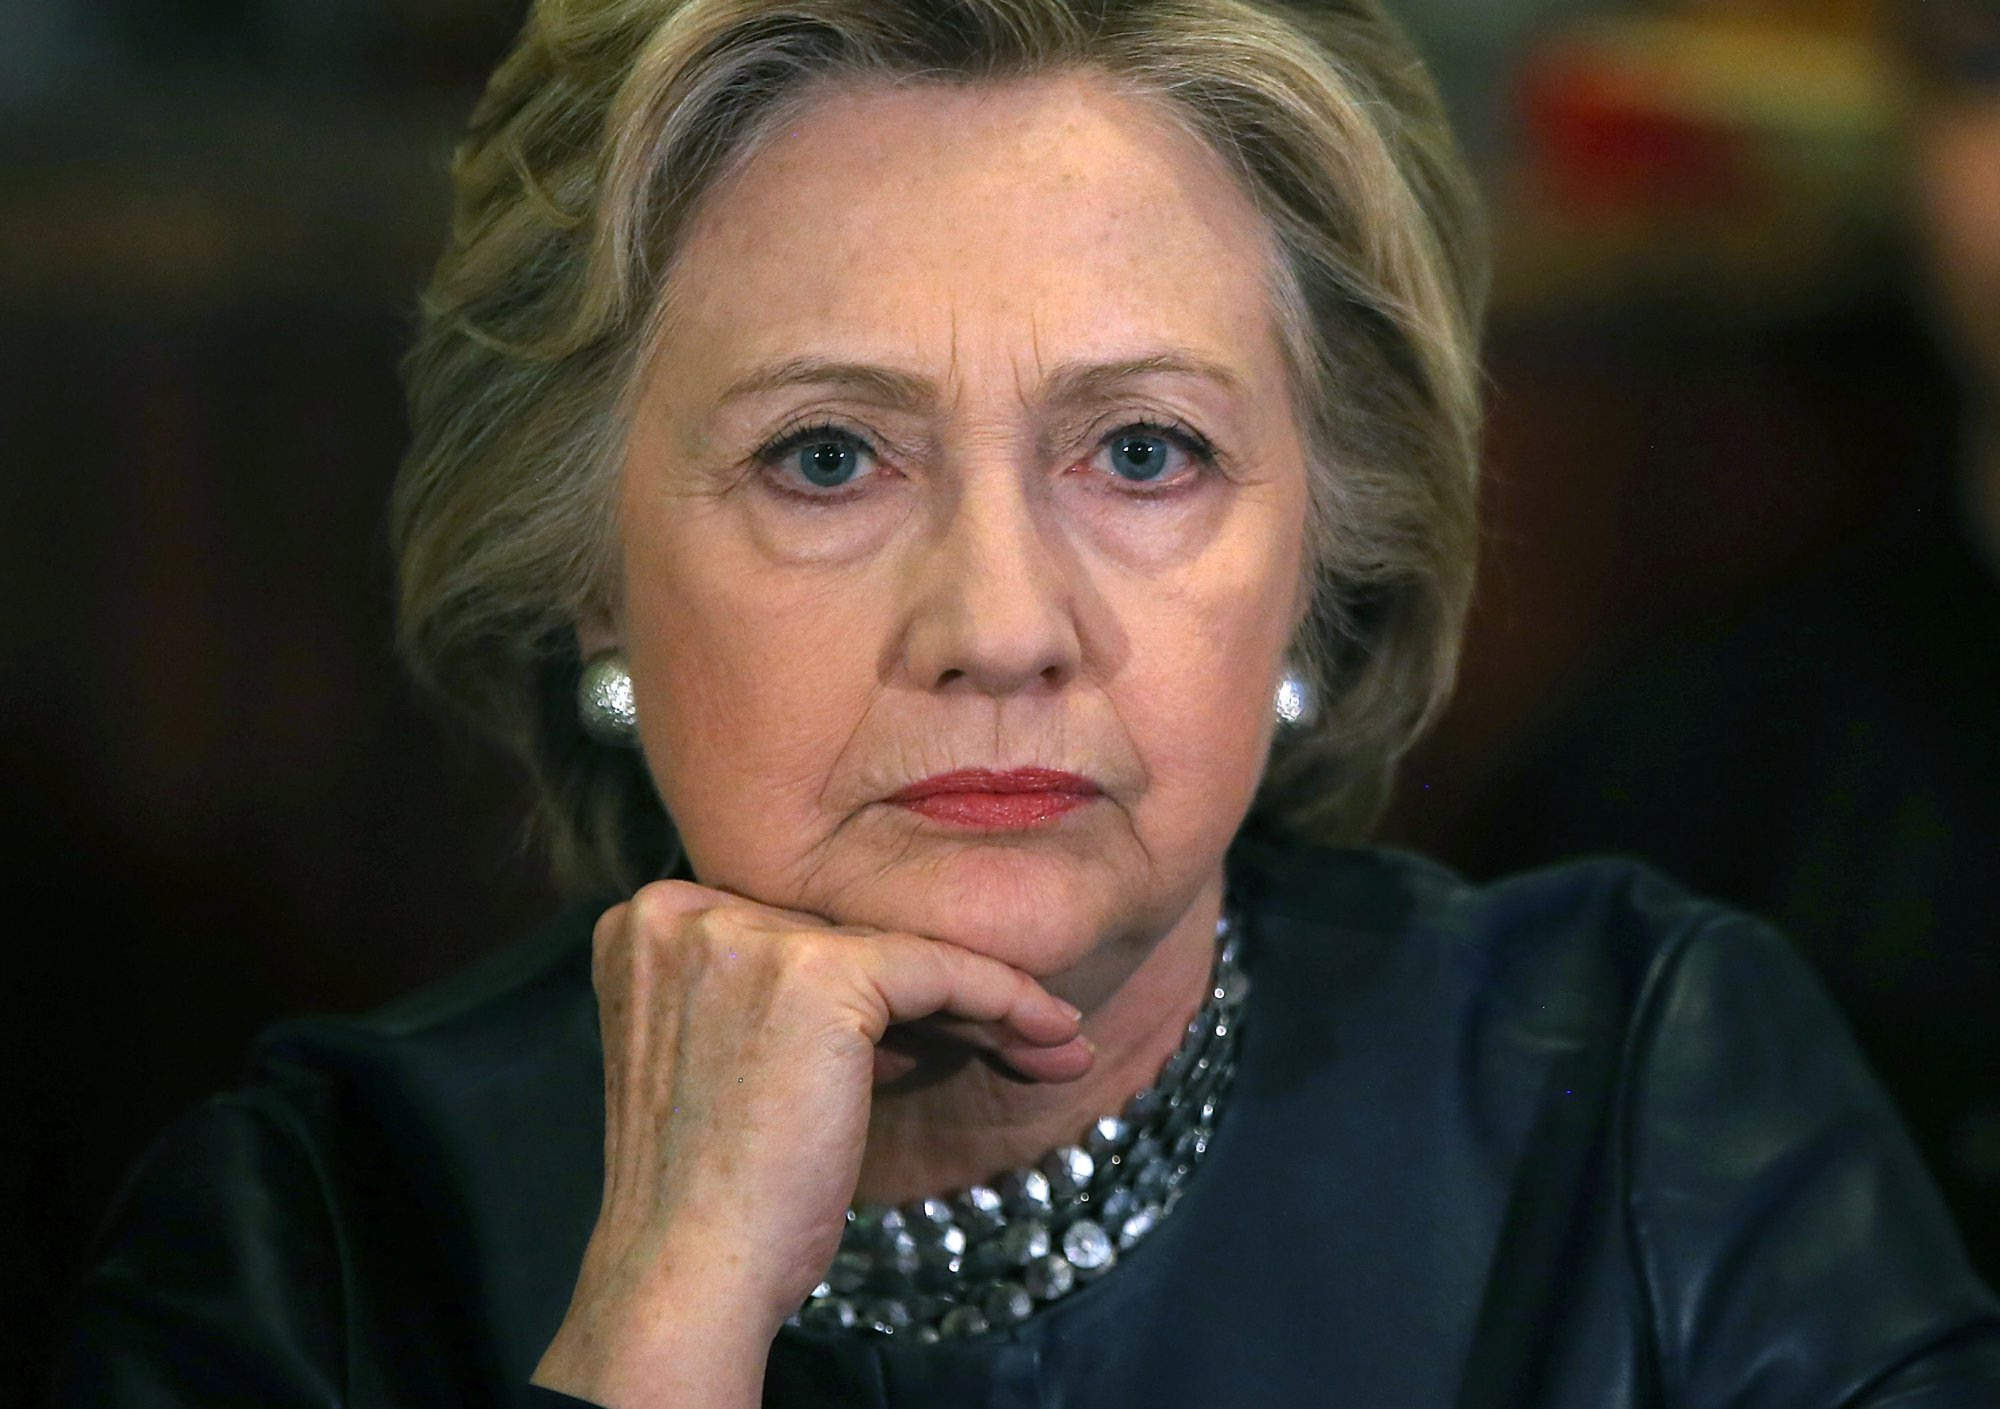 Democratic presidential candidate and former Secretary of State Hillary Clinton. (Getty Images)